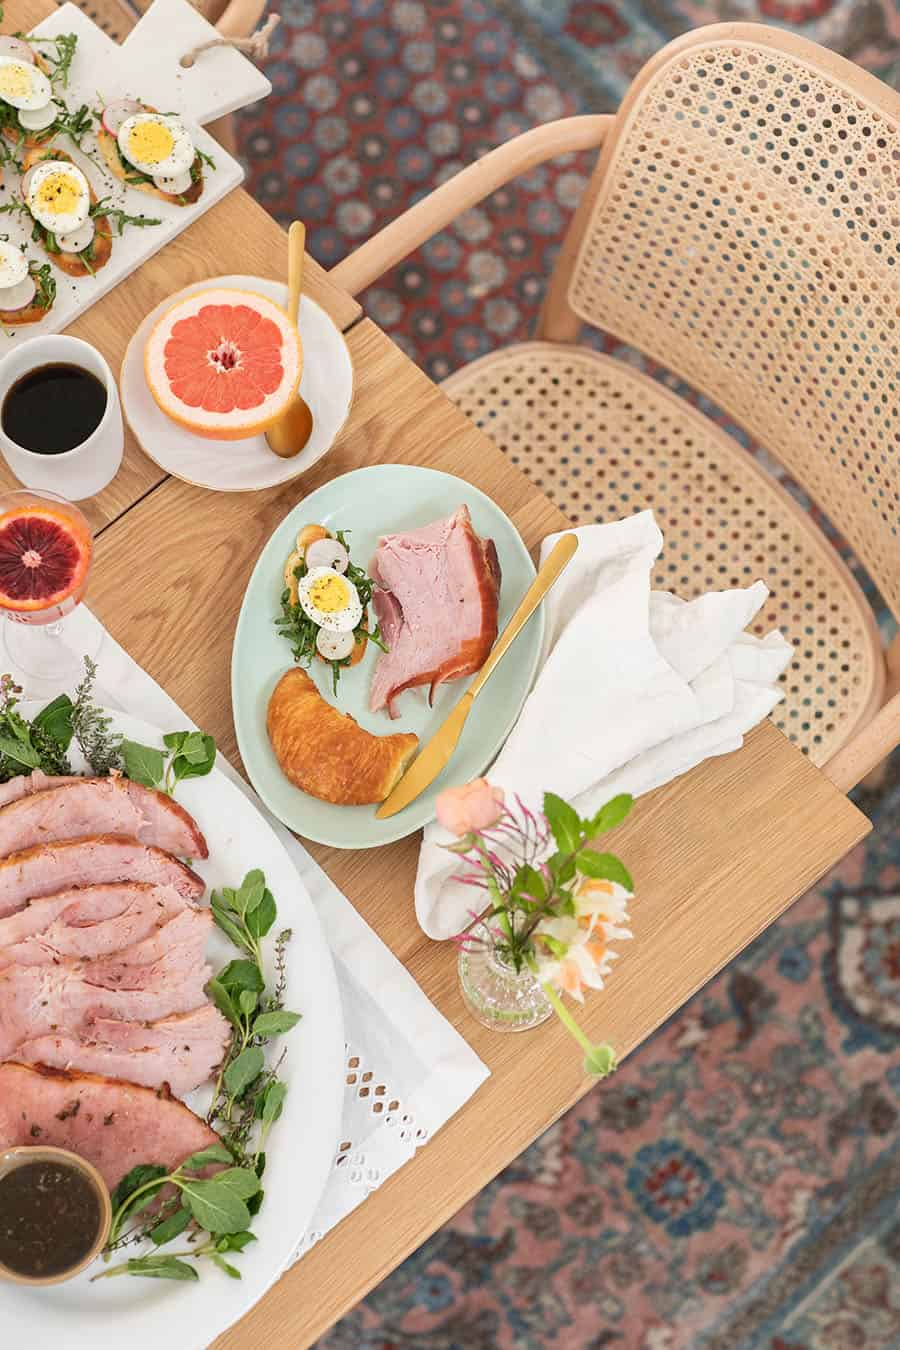 Overhead of an Easter brunch table setting with ham and food.